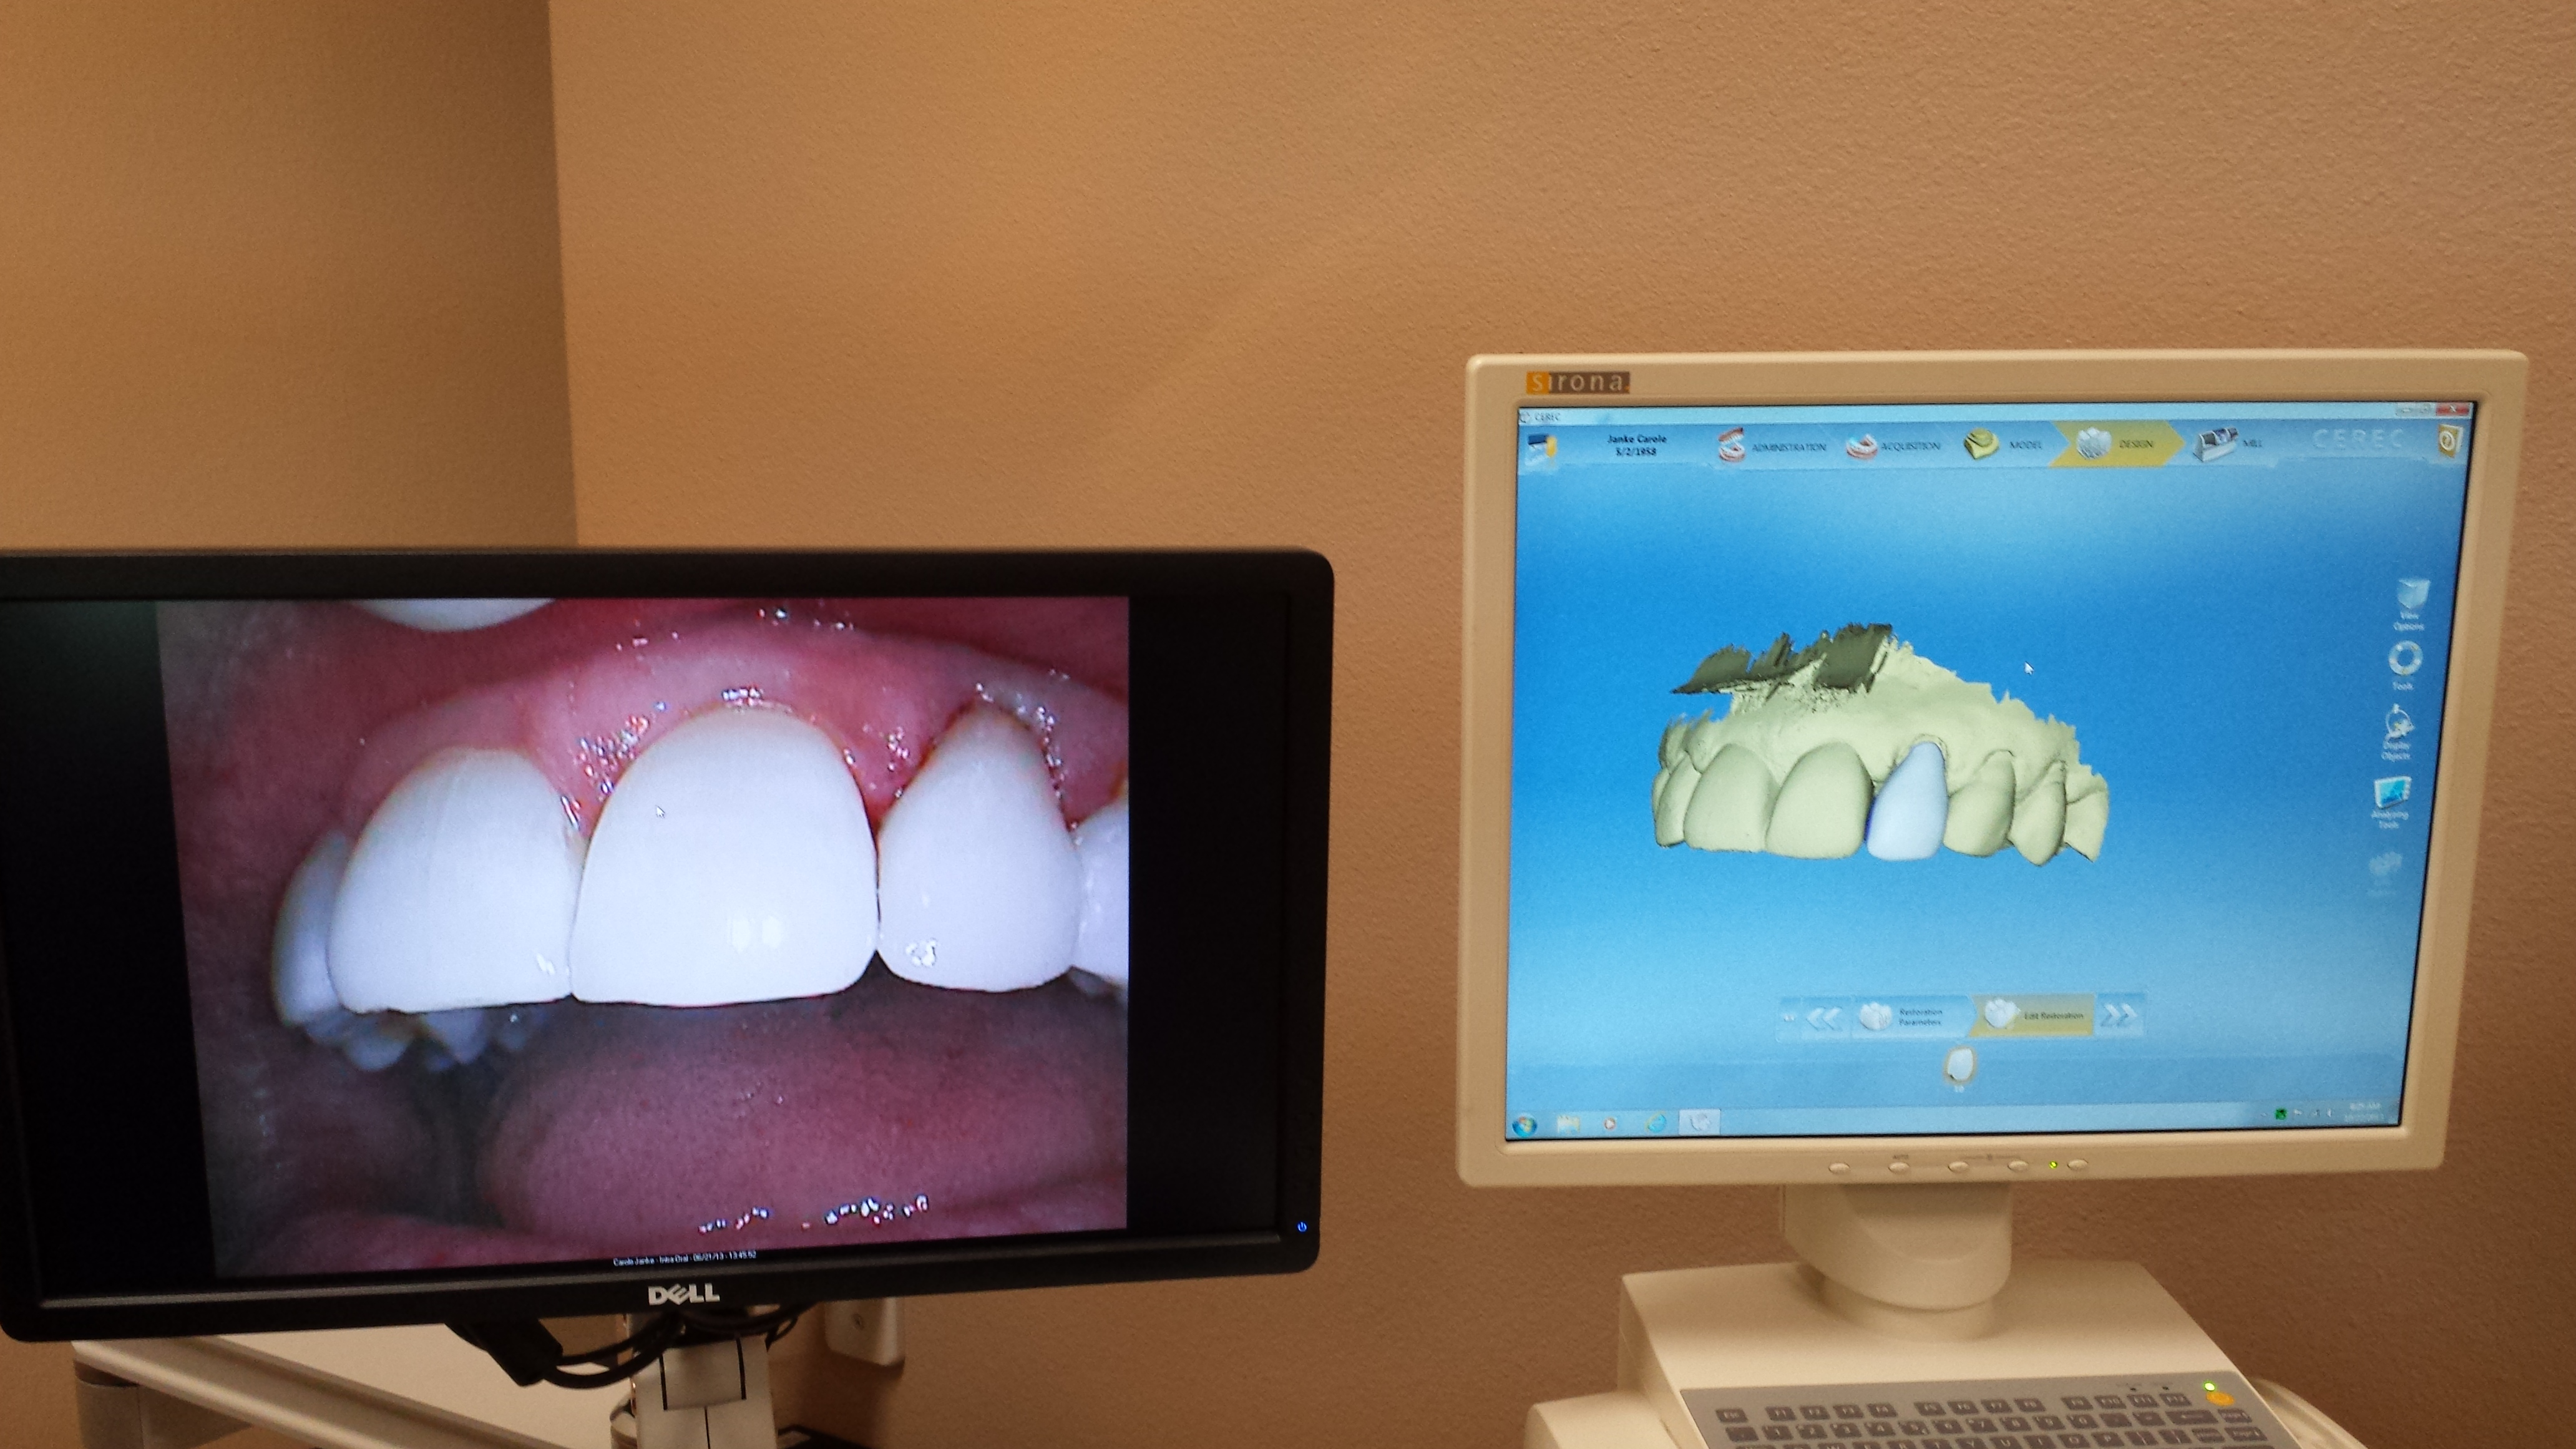 Cerec Same Visit Crown- patient receives permanent crown on the same visit.  No more second visit, no more temporary crown.